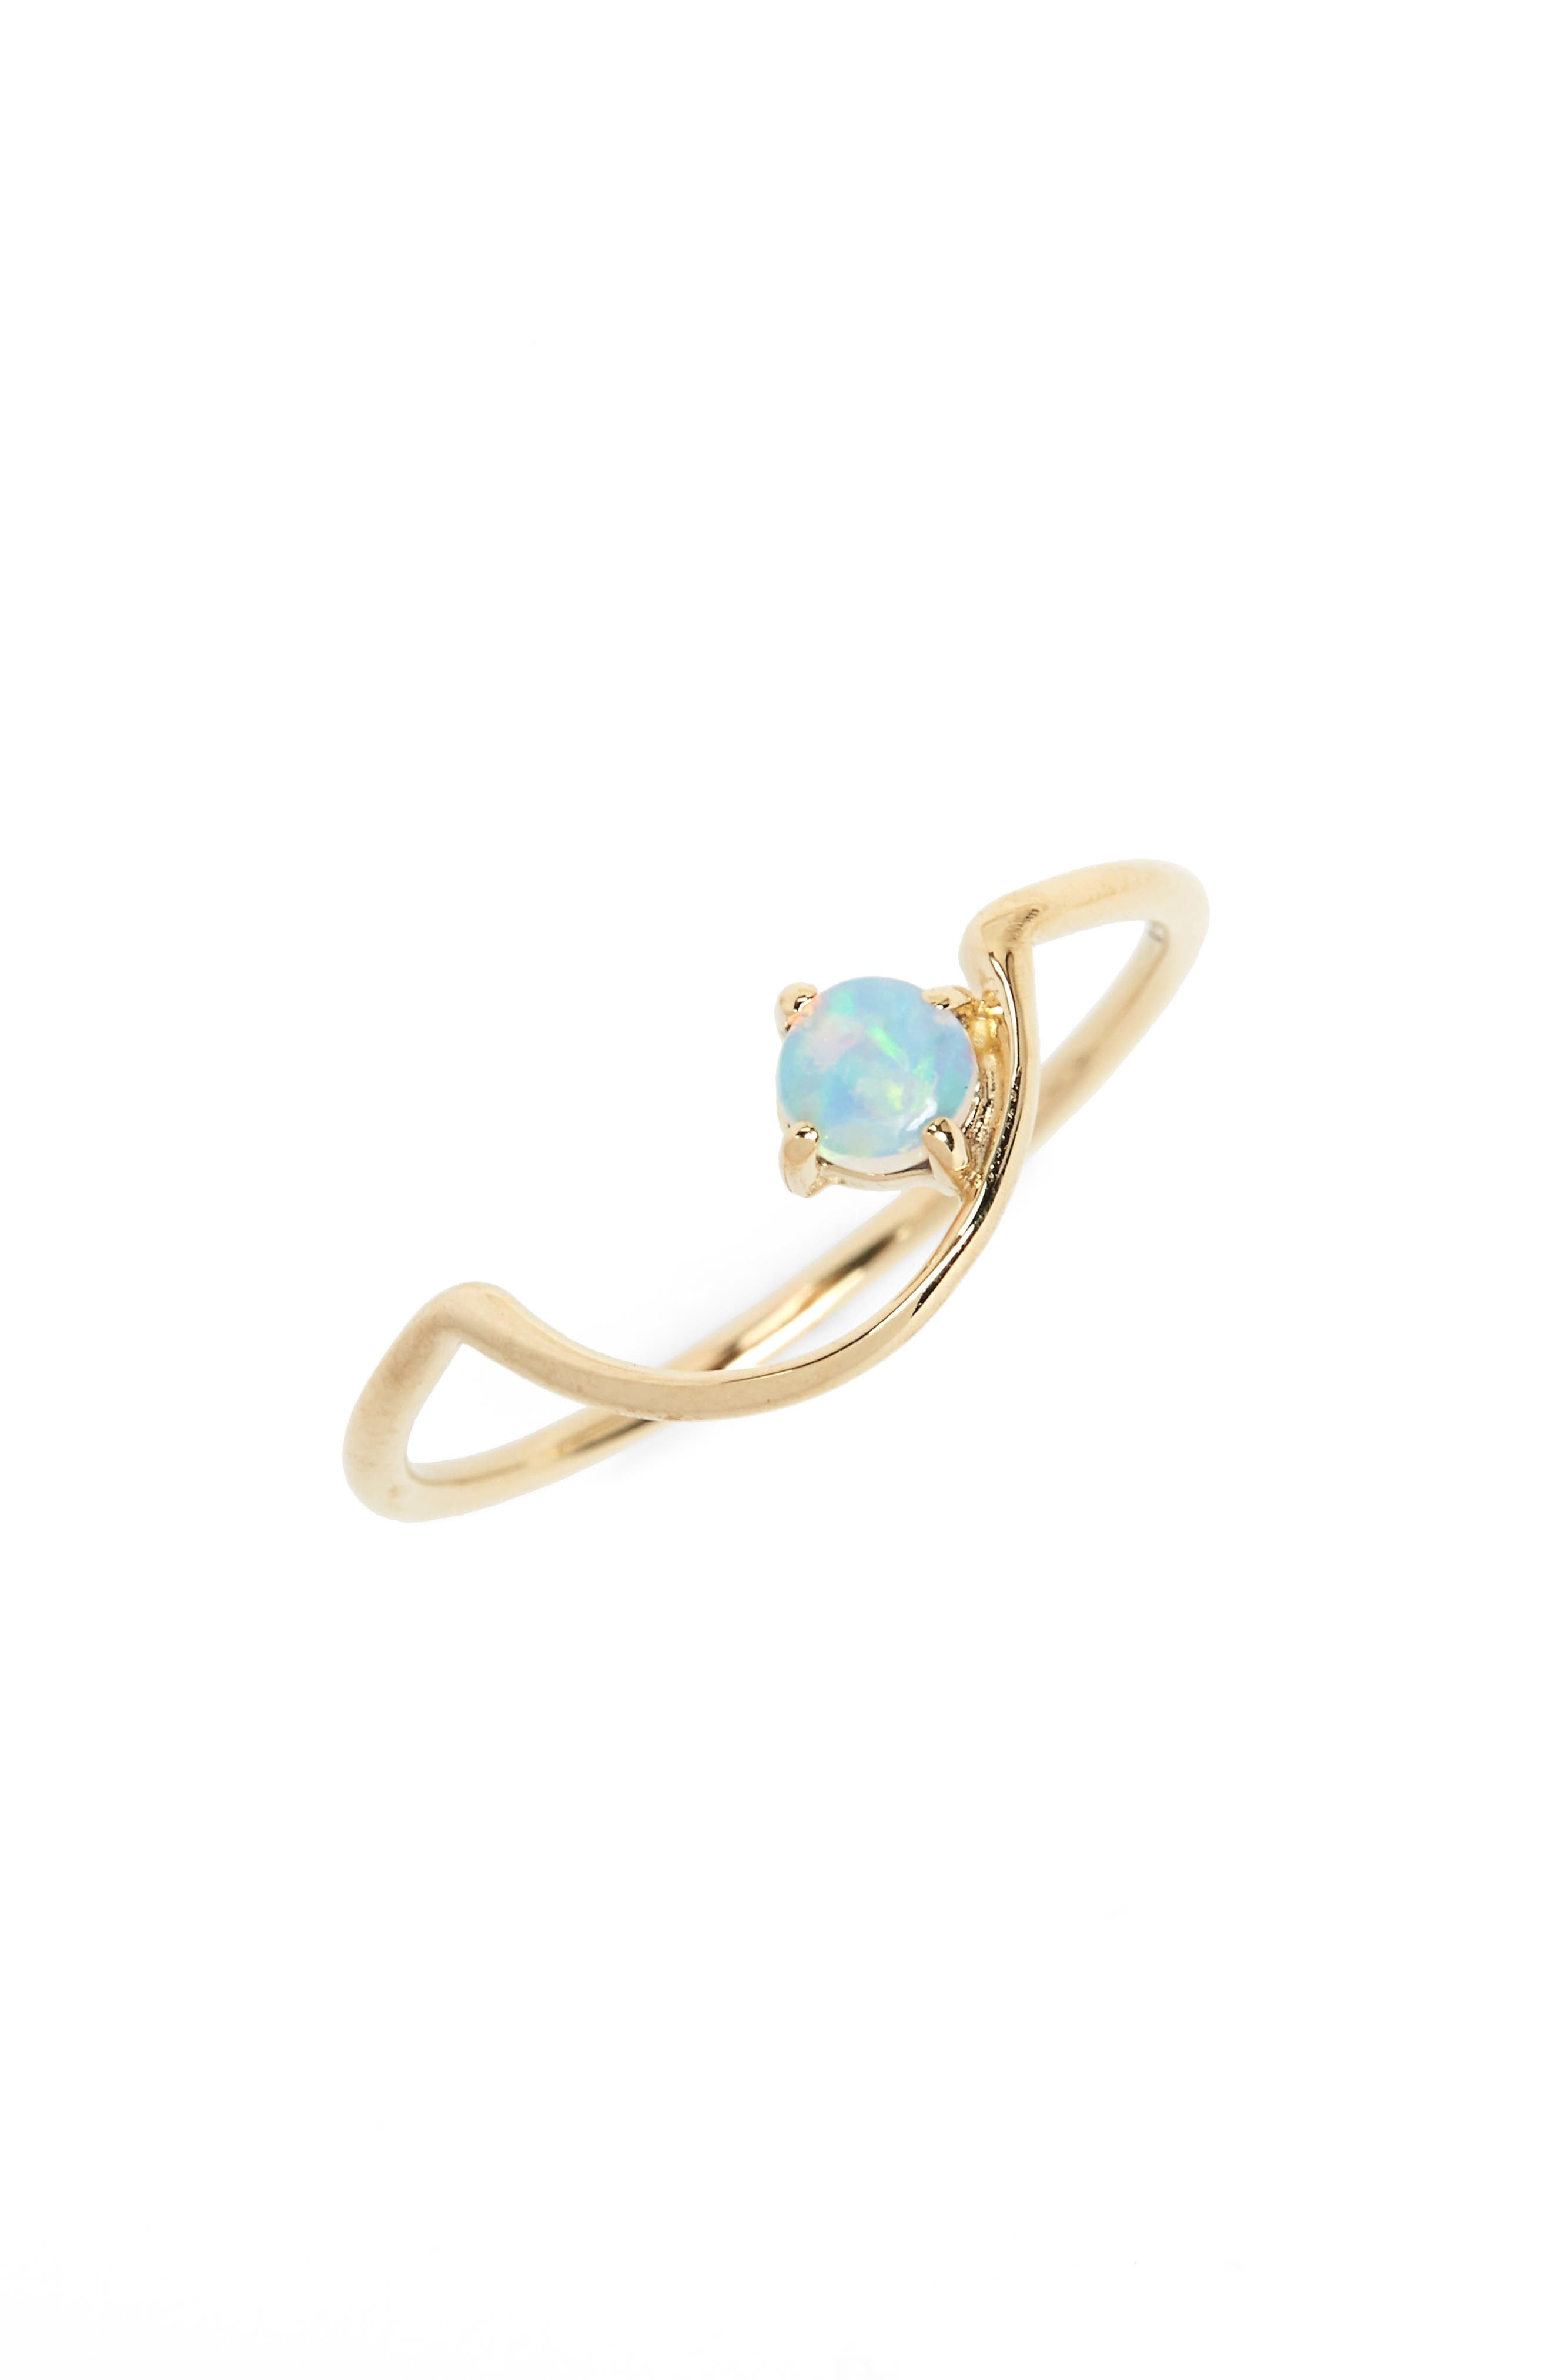 Offset Opal Arc Ring,                             Main thumbnail 1, color,                             OPAL/ GOLD